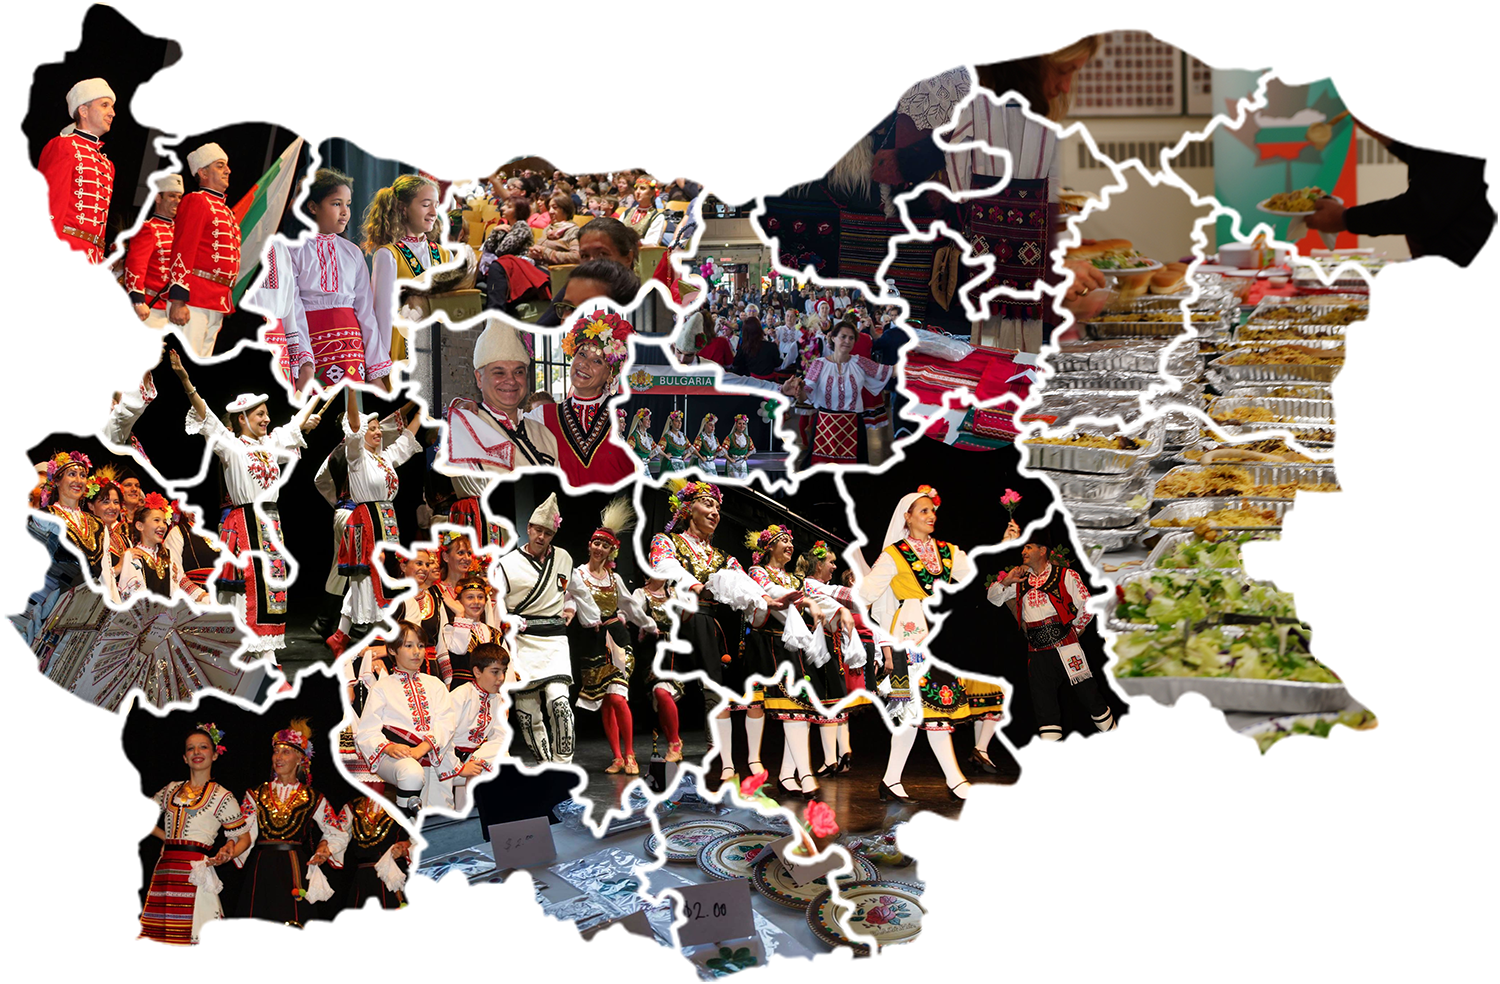 Selected moments from Bulgarian Cultural Days 2016, collage by Galia Nikolaeva